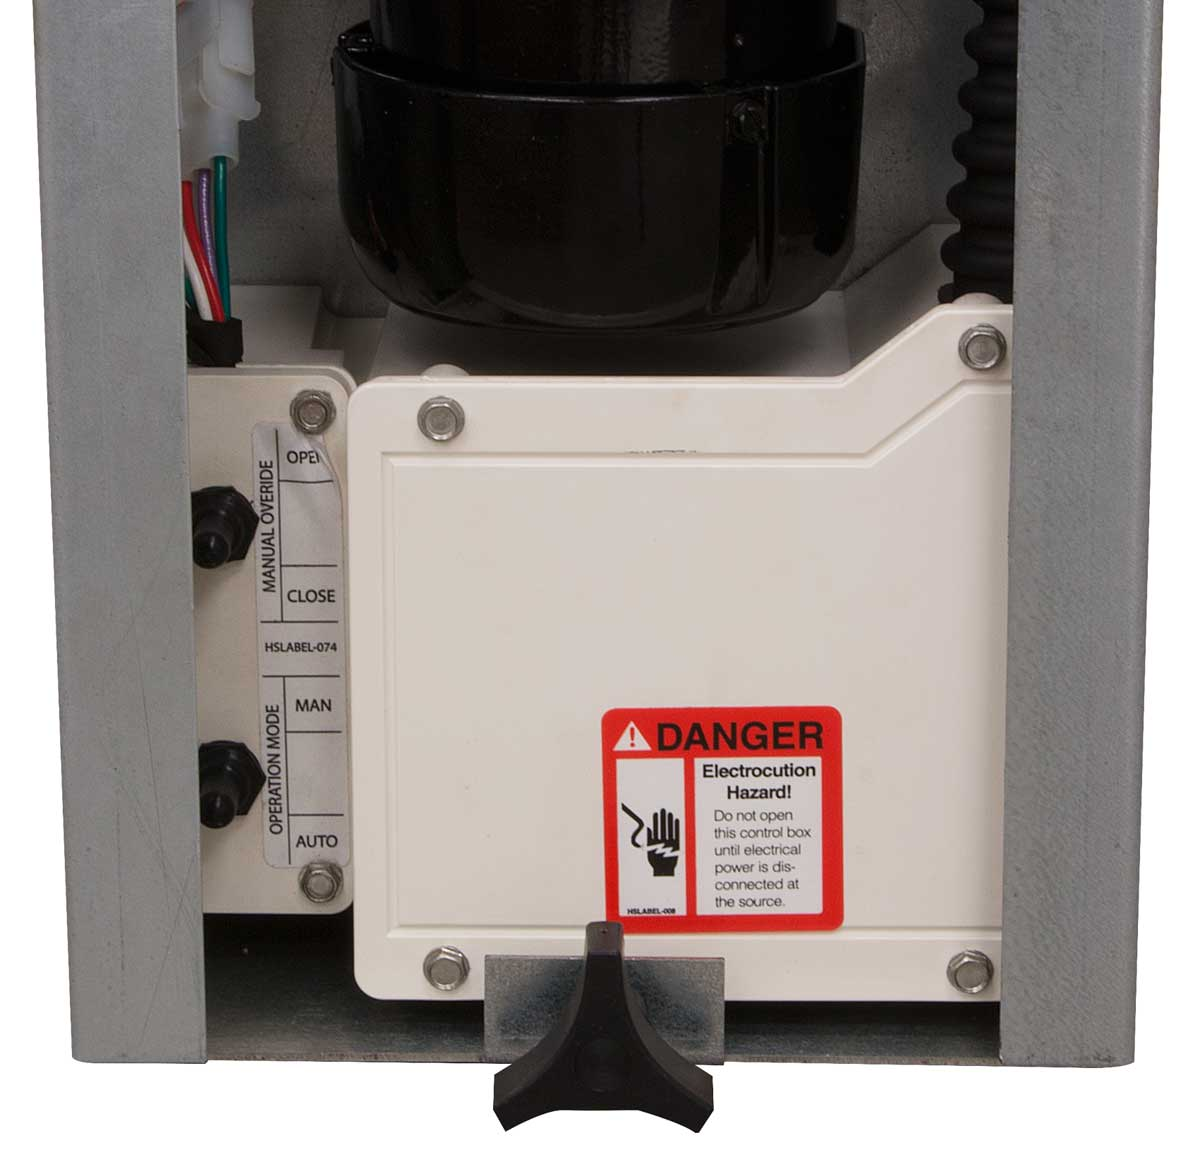 Localized controls are conveniently located next to the protective water-resistant electrical connection enclosure.